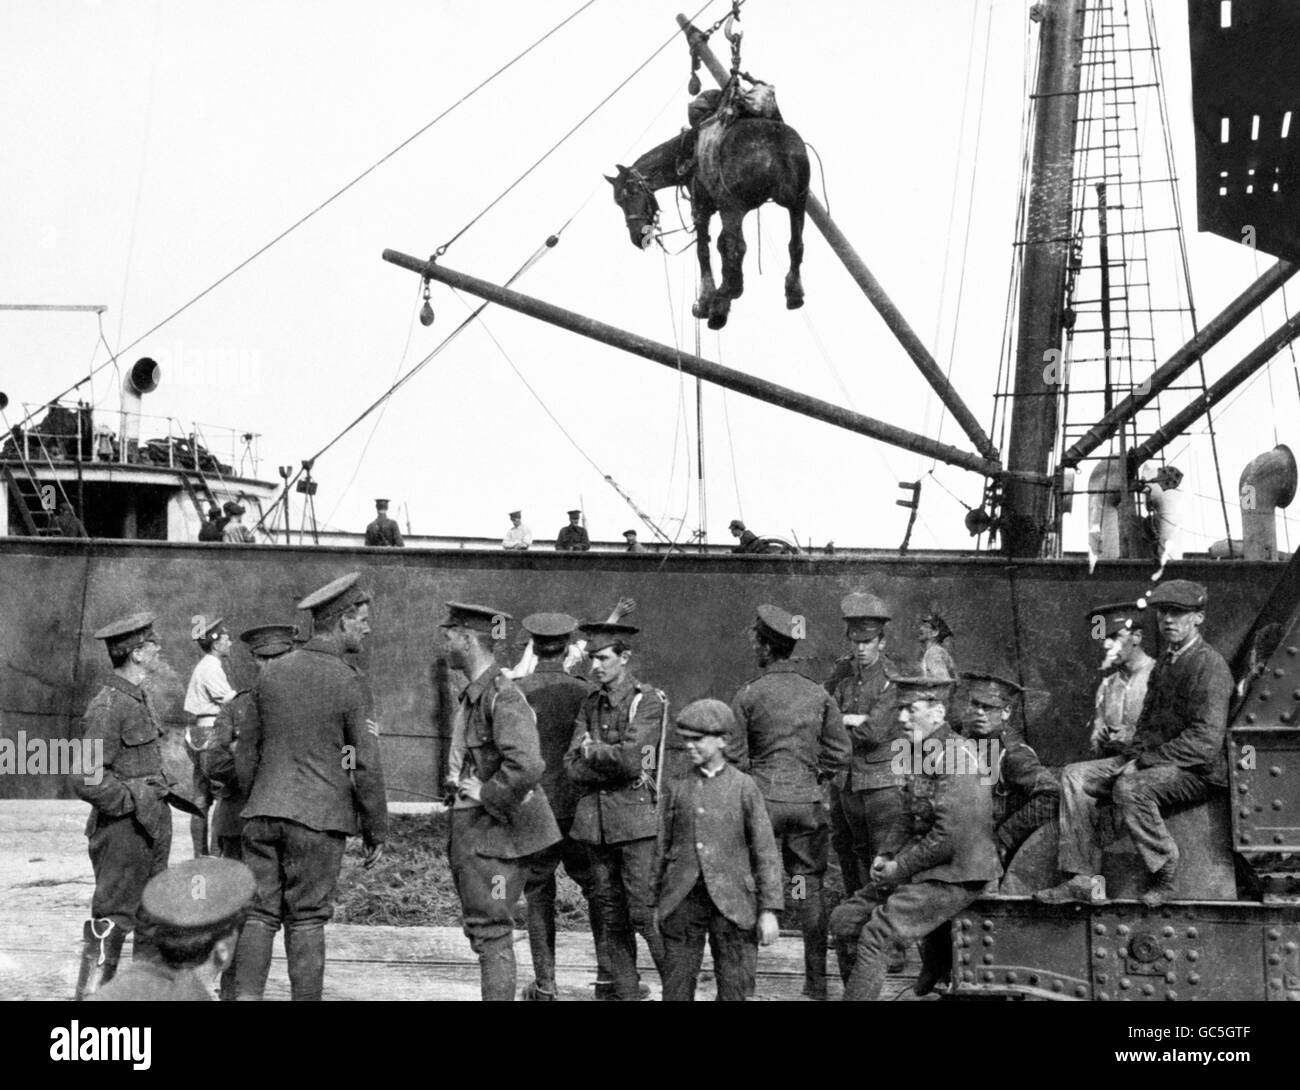 World War One - HORSES UNLOADED AT BOULOGNE - Stock Image